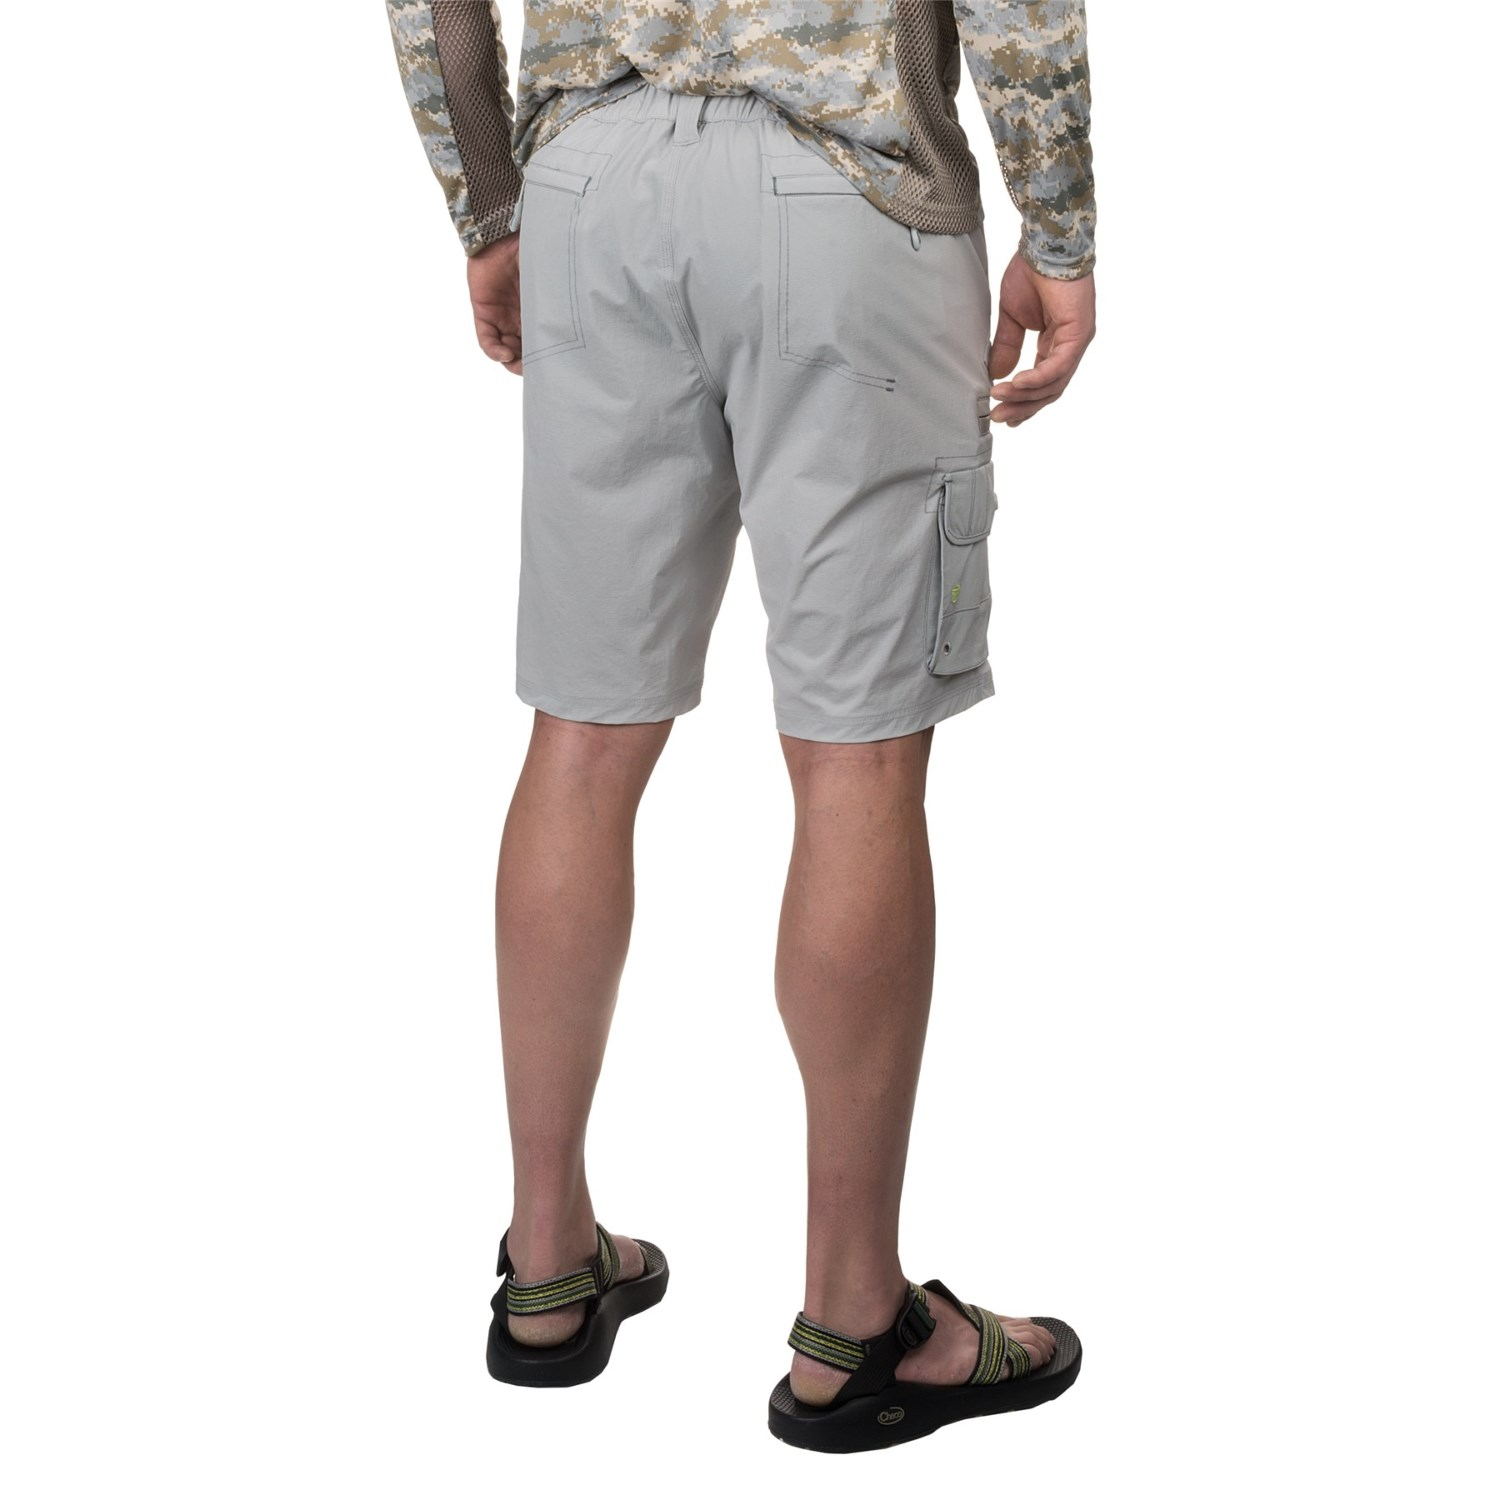 32bed21328fe Gillz Stalker Shorts (For Men) - Save 58%